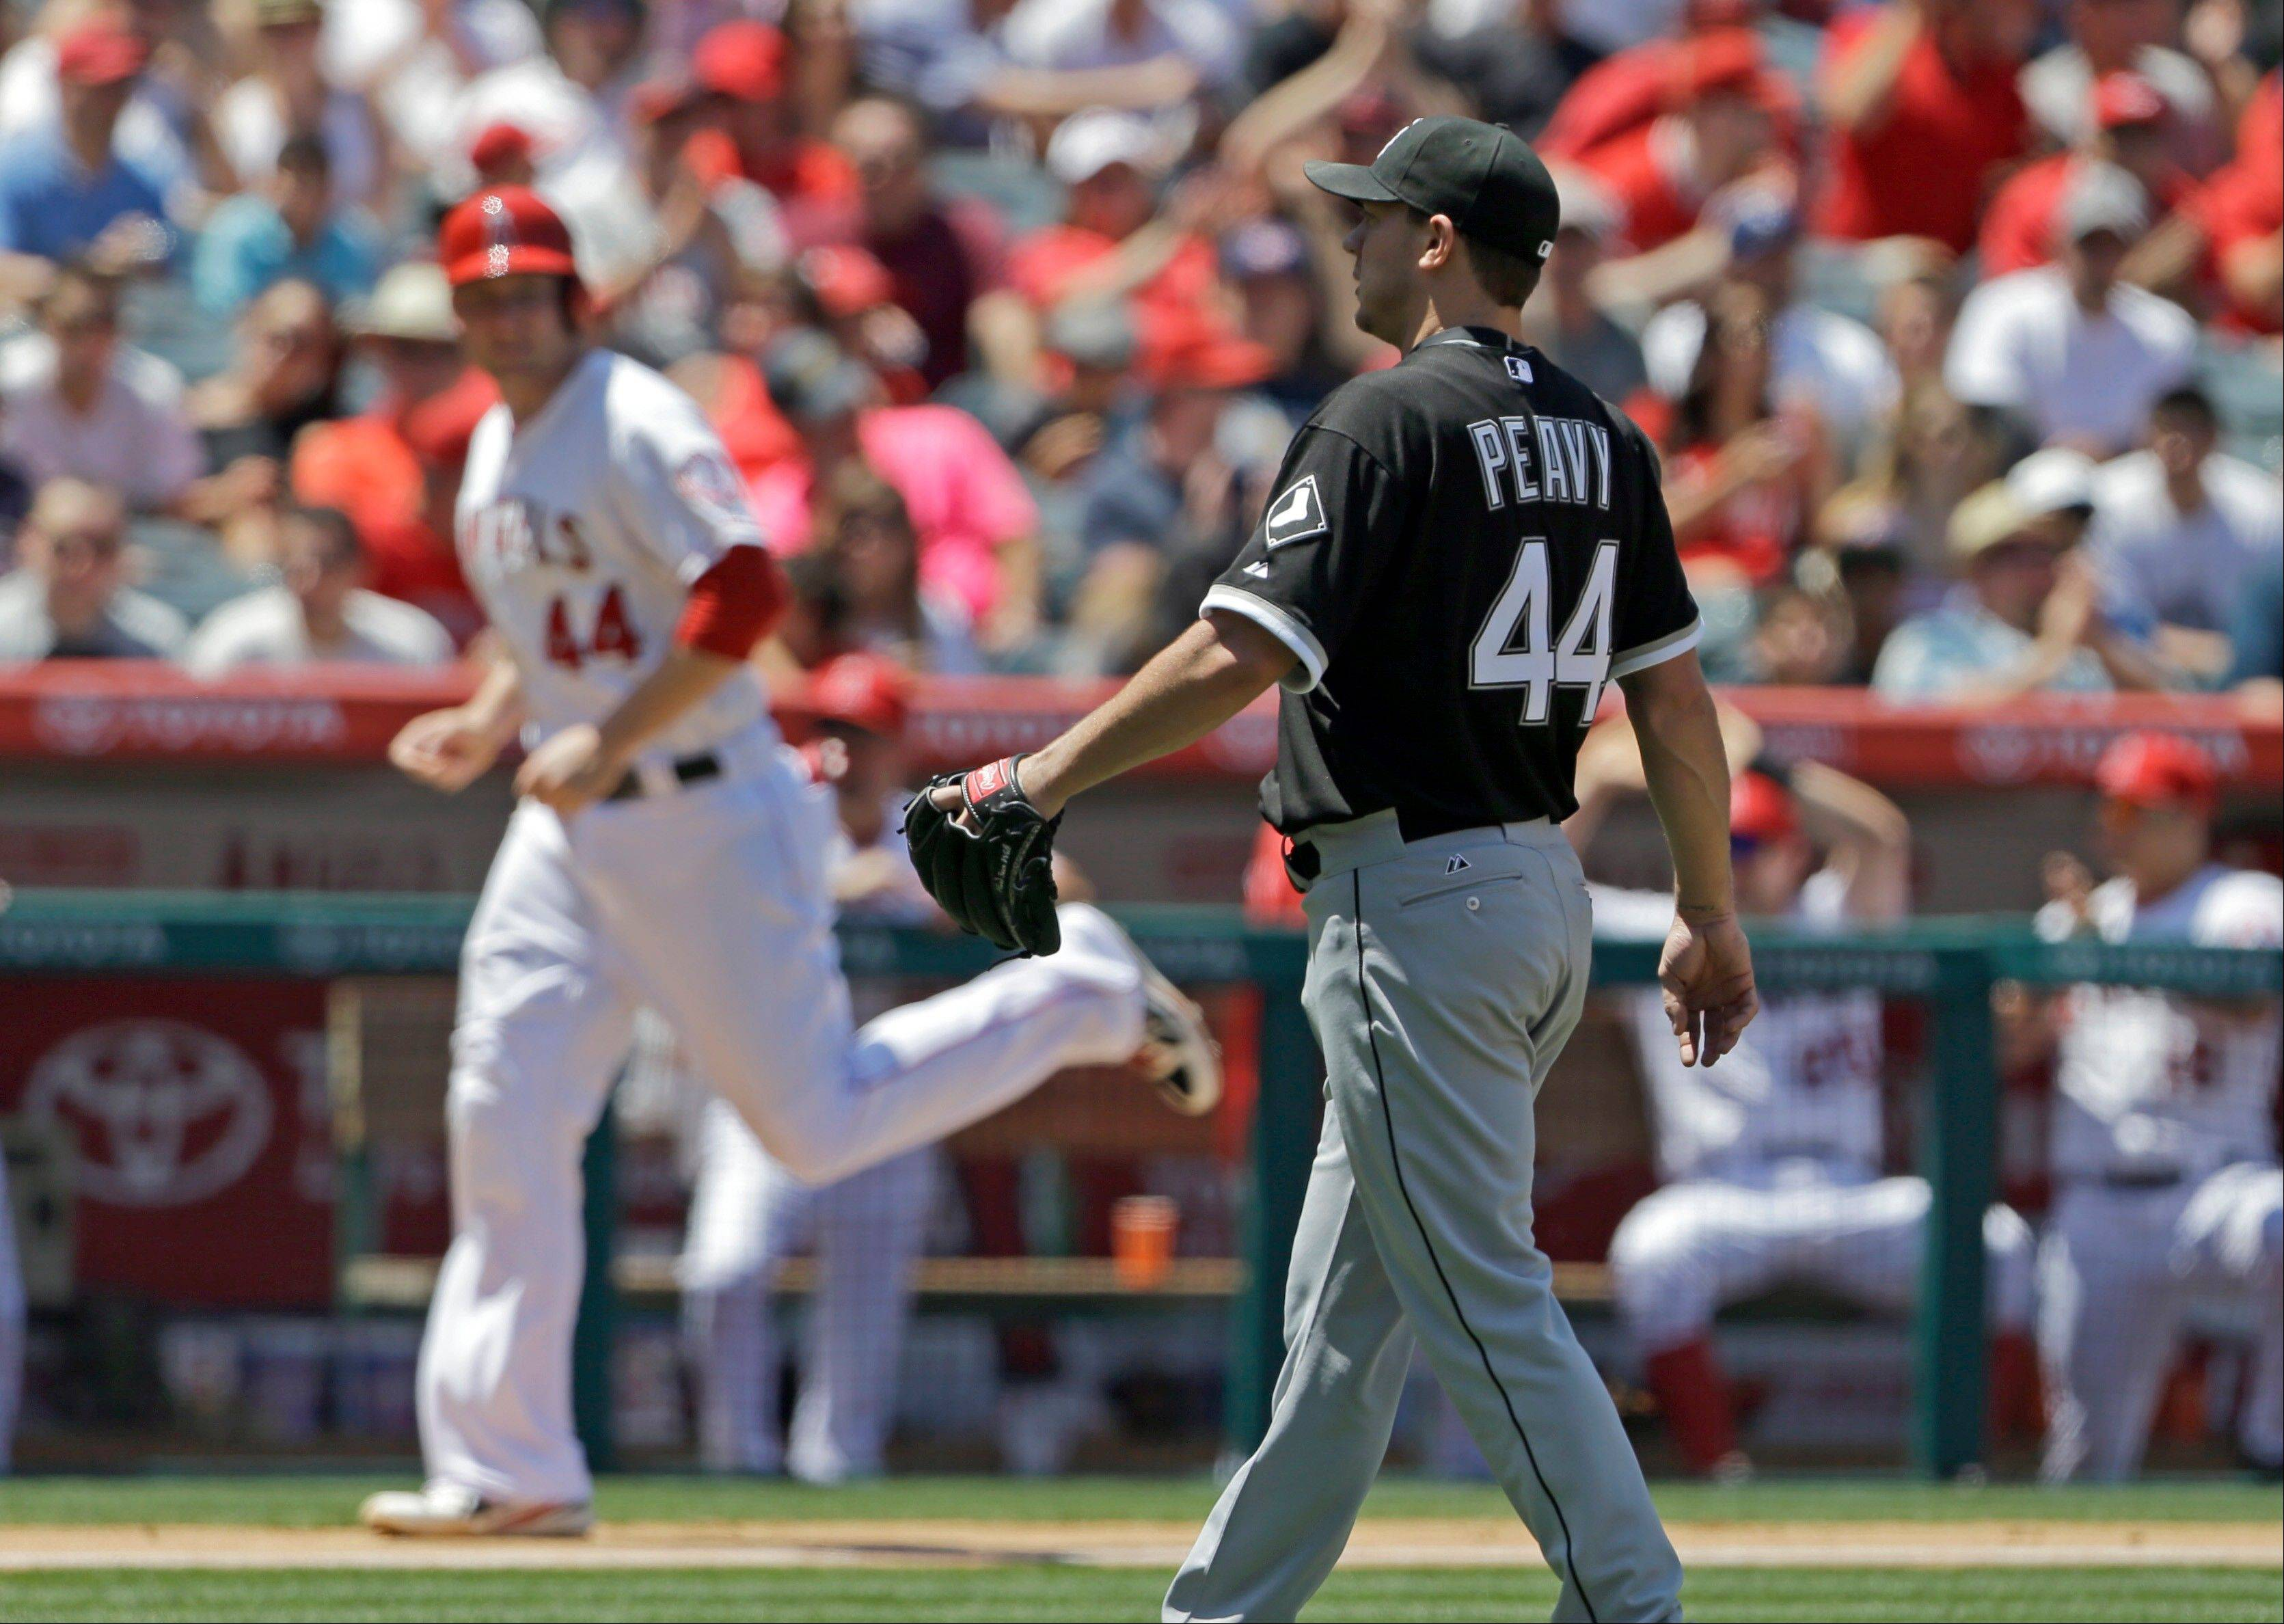 White Sox pitcher Jake Peavy watches as Los Angeles Angels' Mark Trumbo, background, scores on a bases-loaded walk in the fourth inning of a baseball game in Anaheim, Calif., Sunday, May 19, 2013.